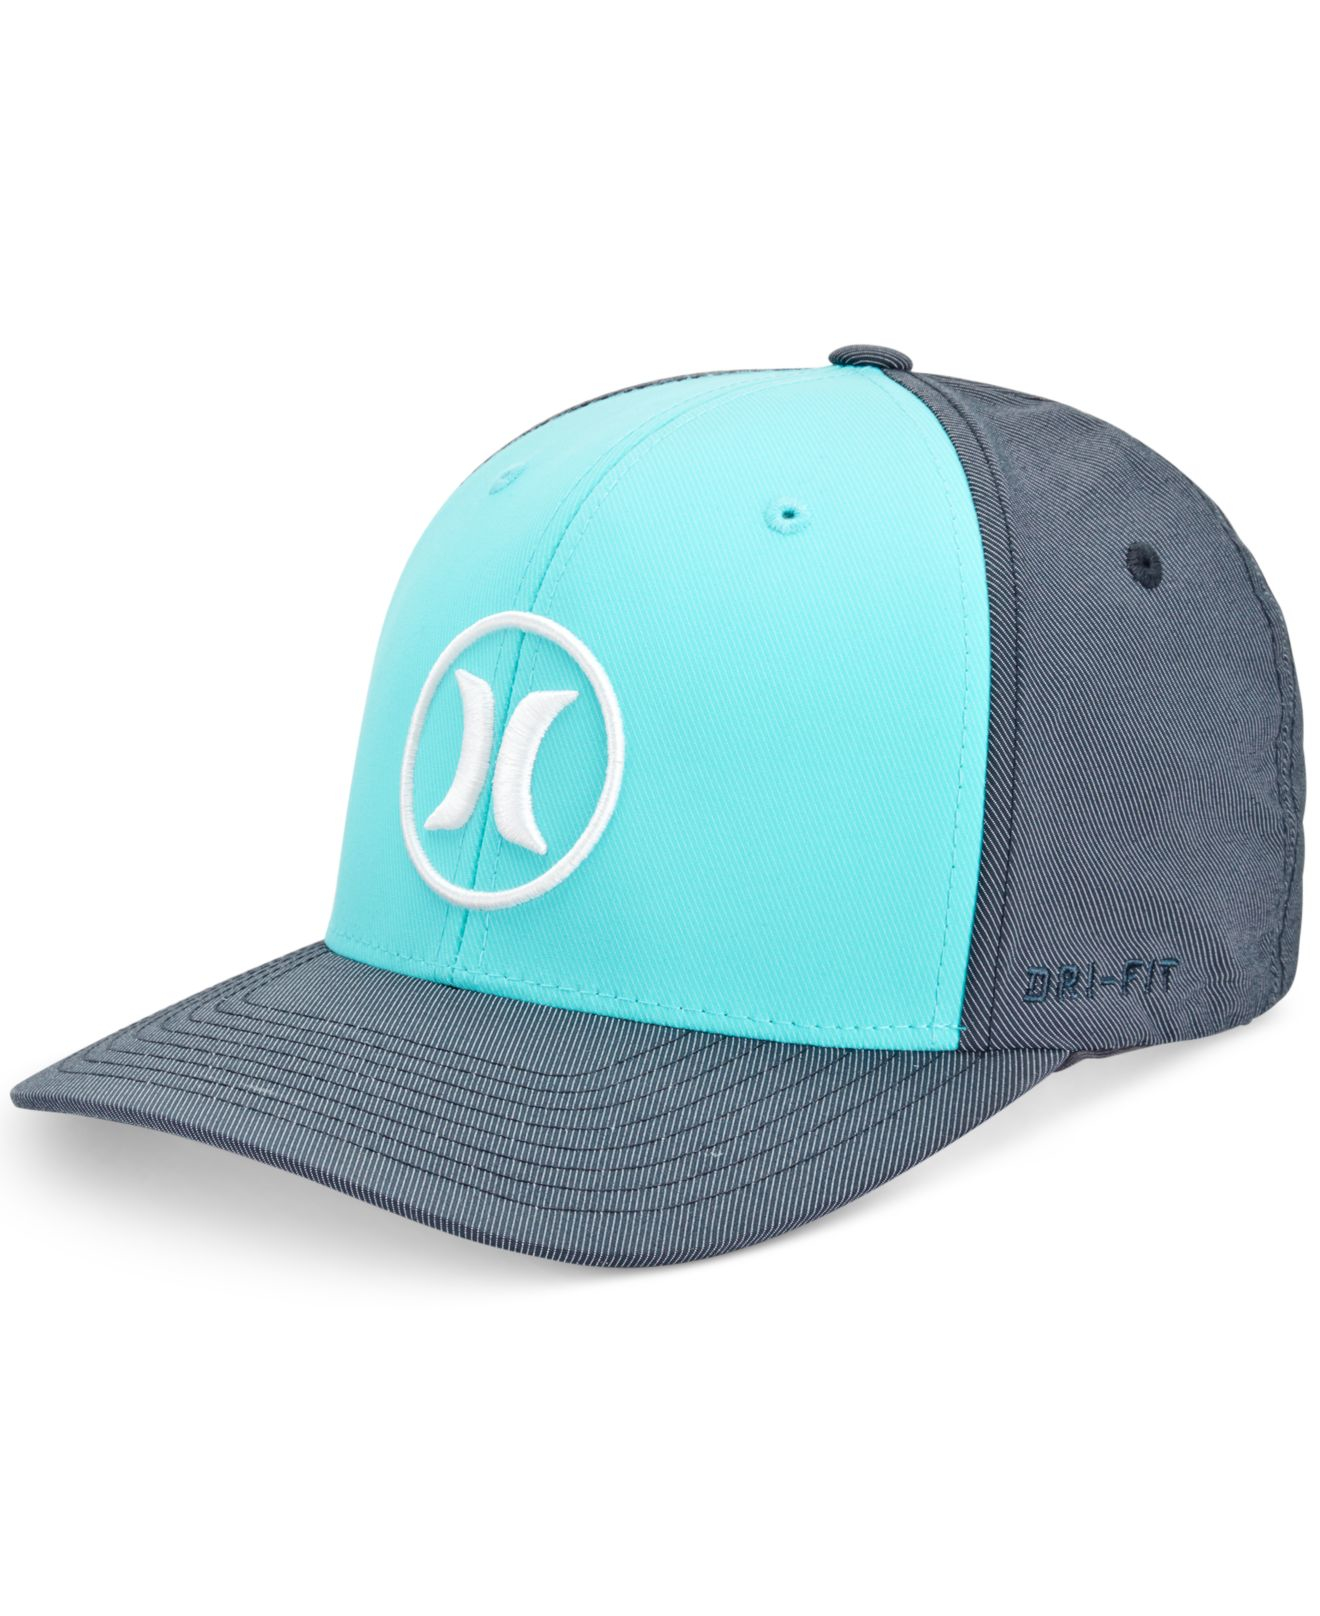 Hurley men s dri fit bali embroidered logo hat in blue for